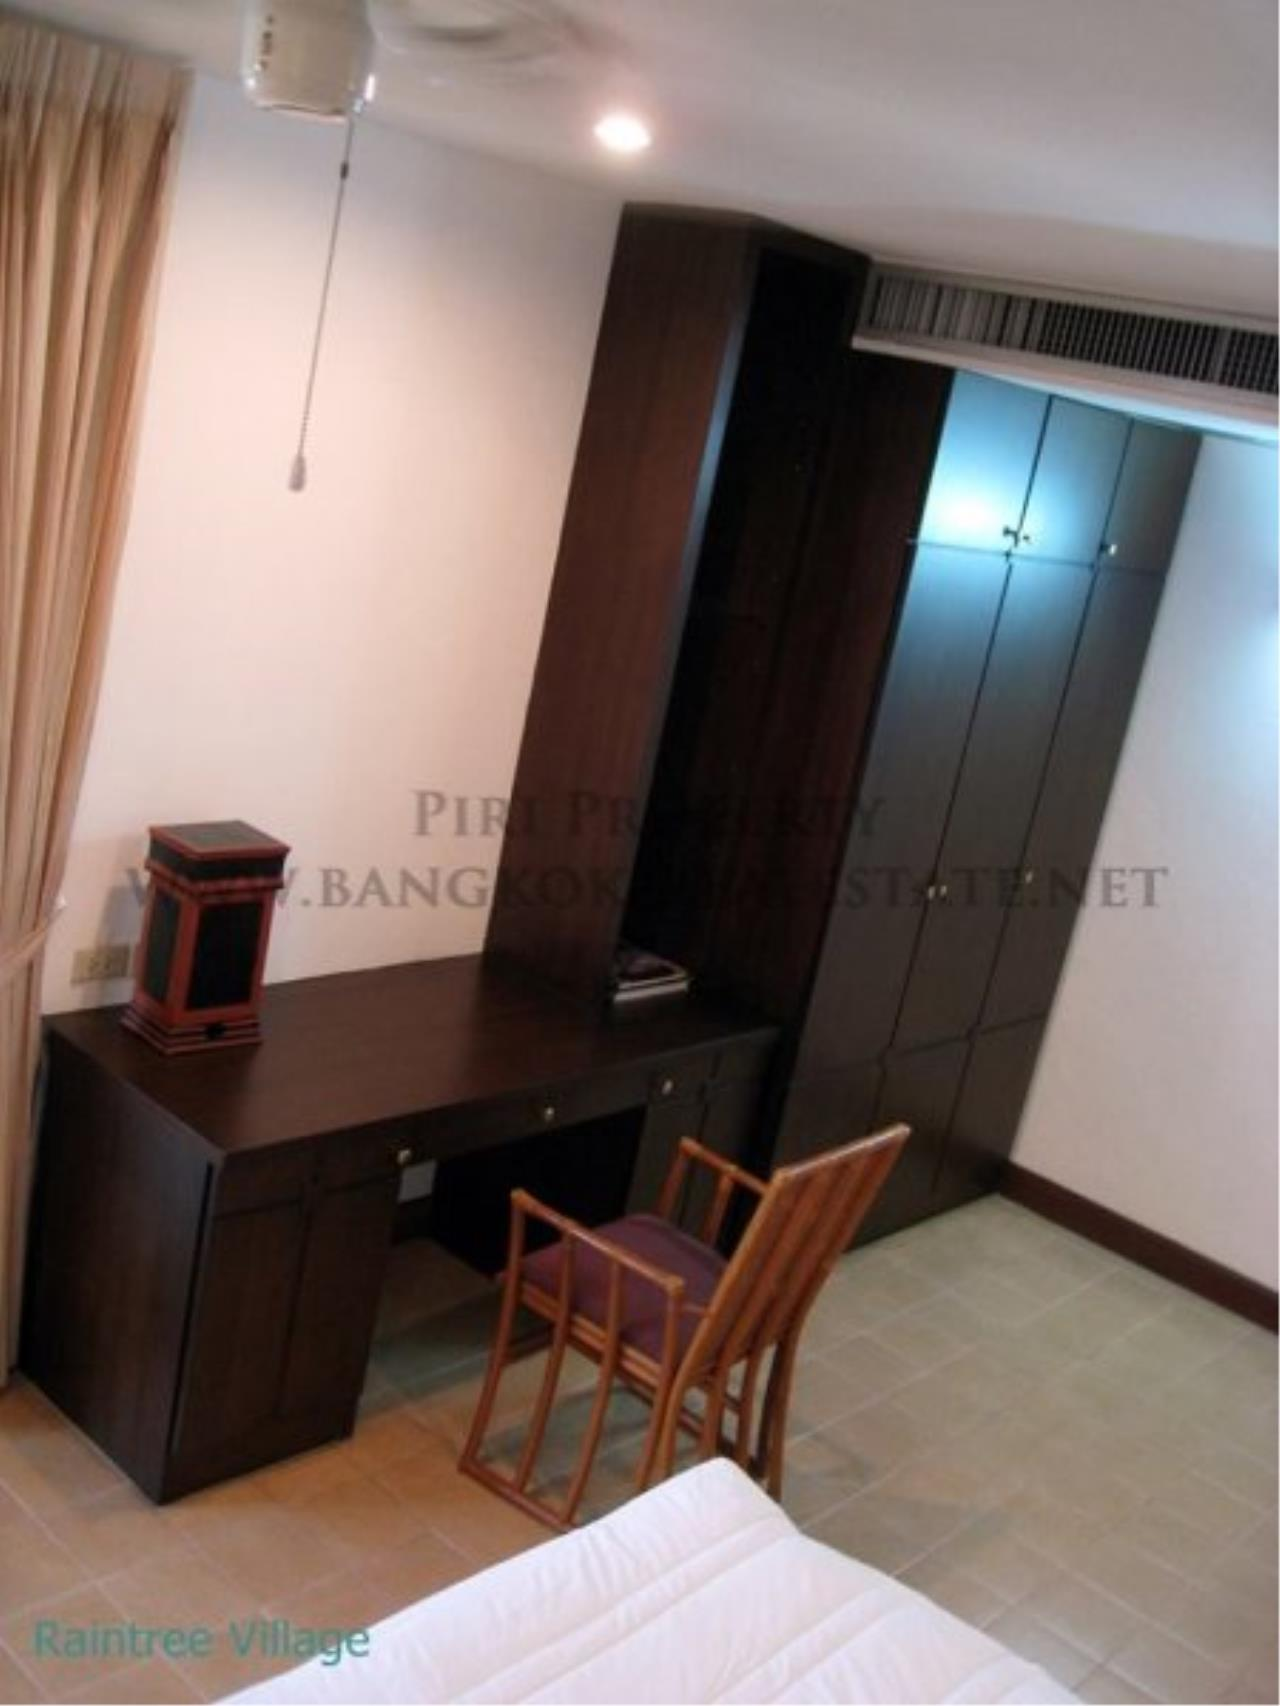 Piri Property Agency's Spacious Family Apartment in Phrom Phong for Rent - 3 Bed 13